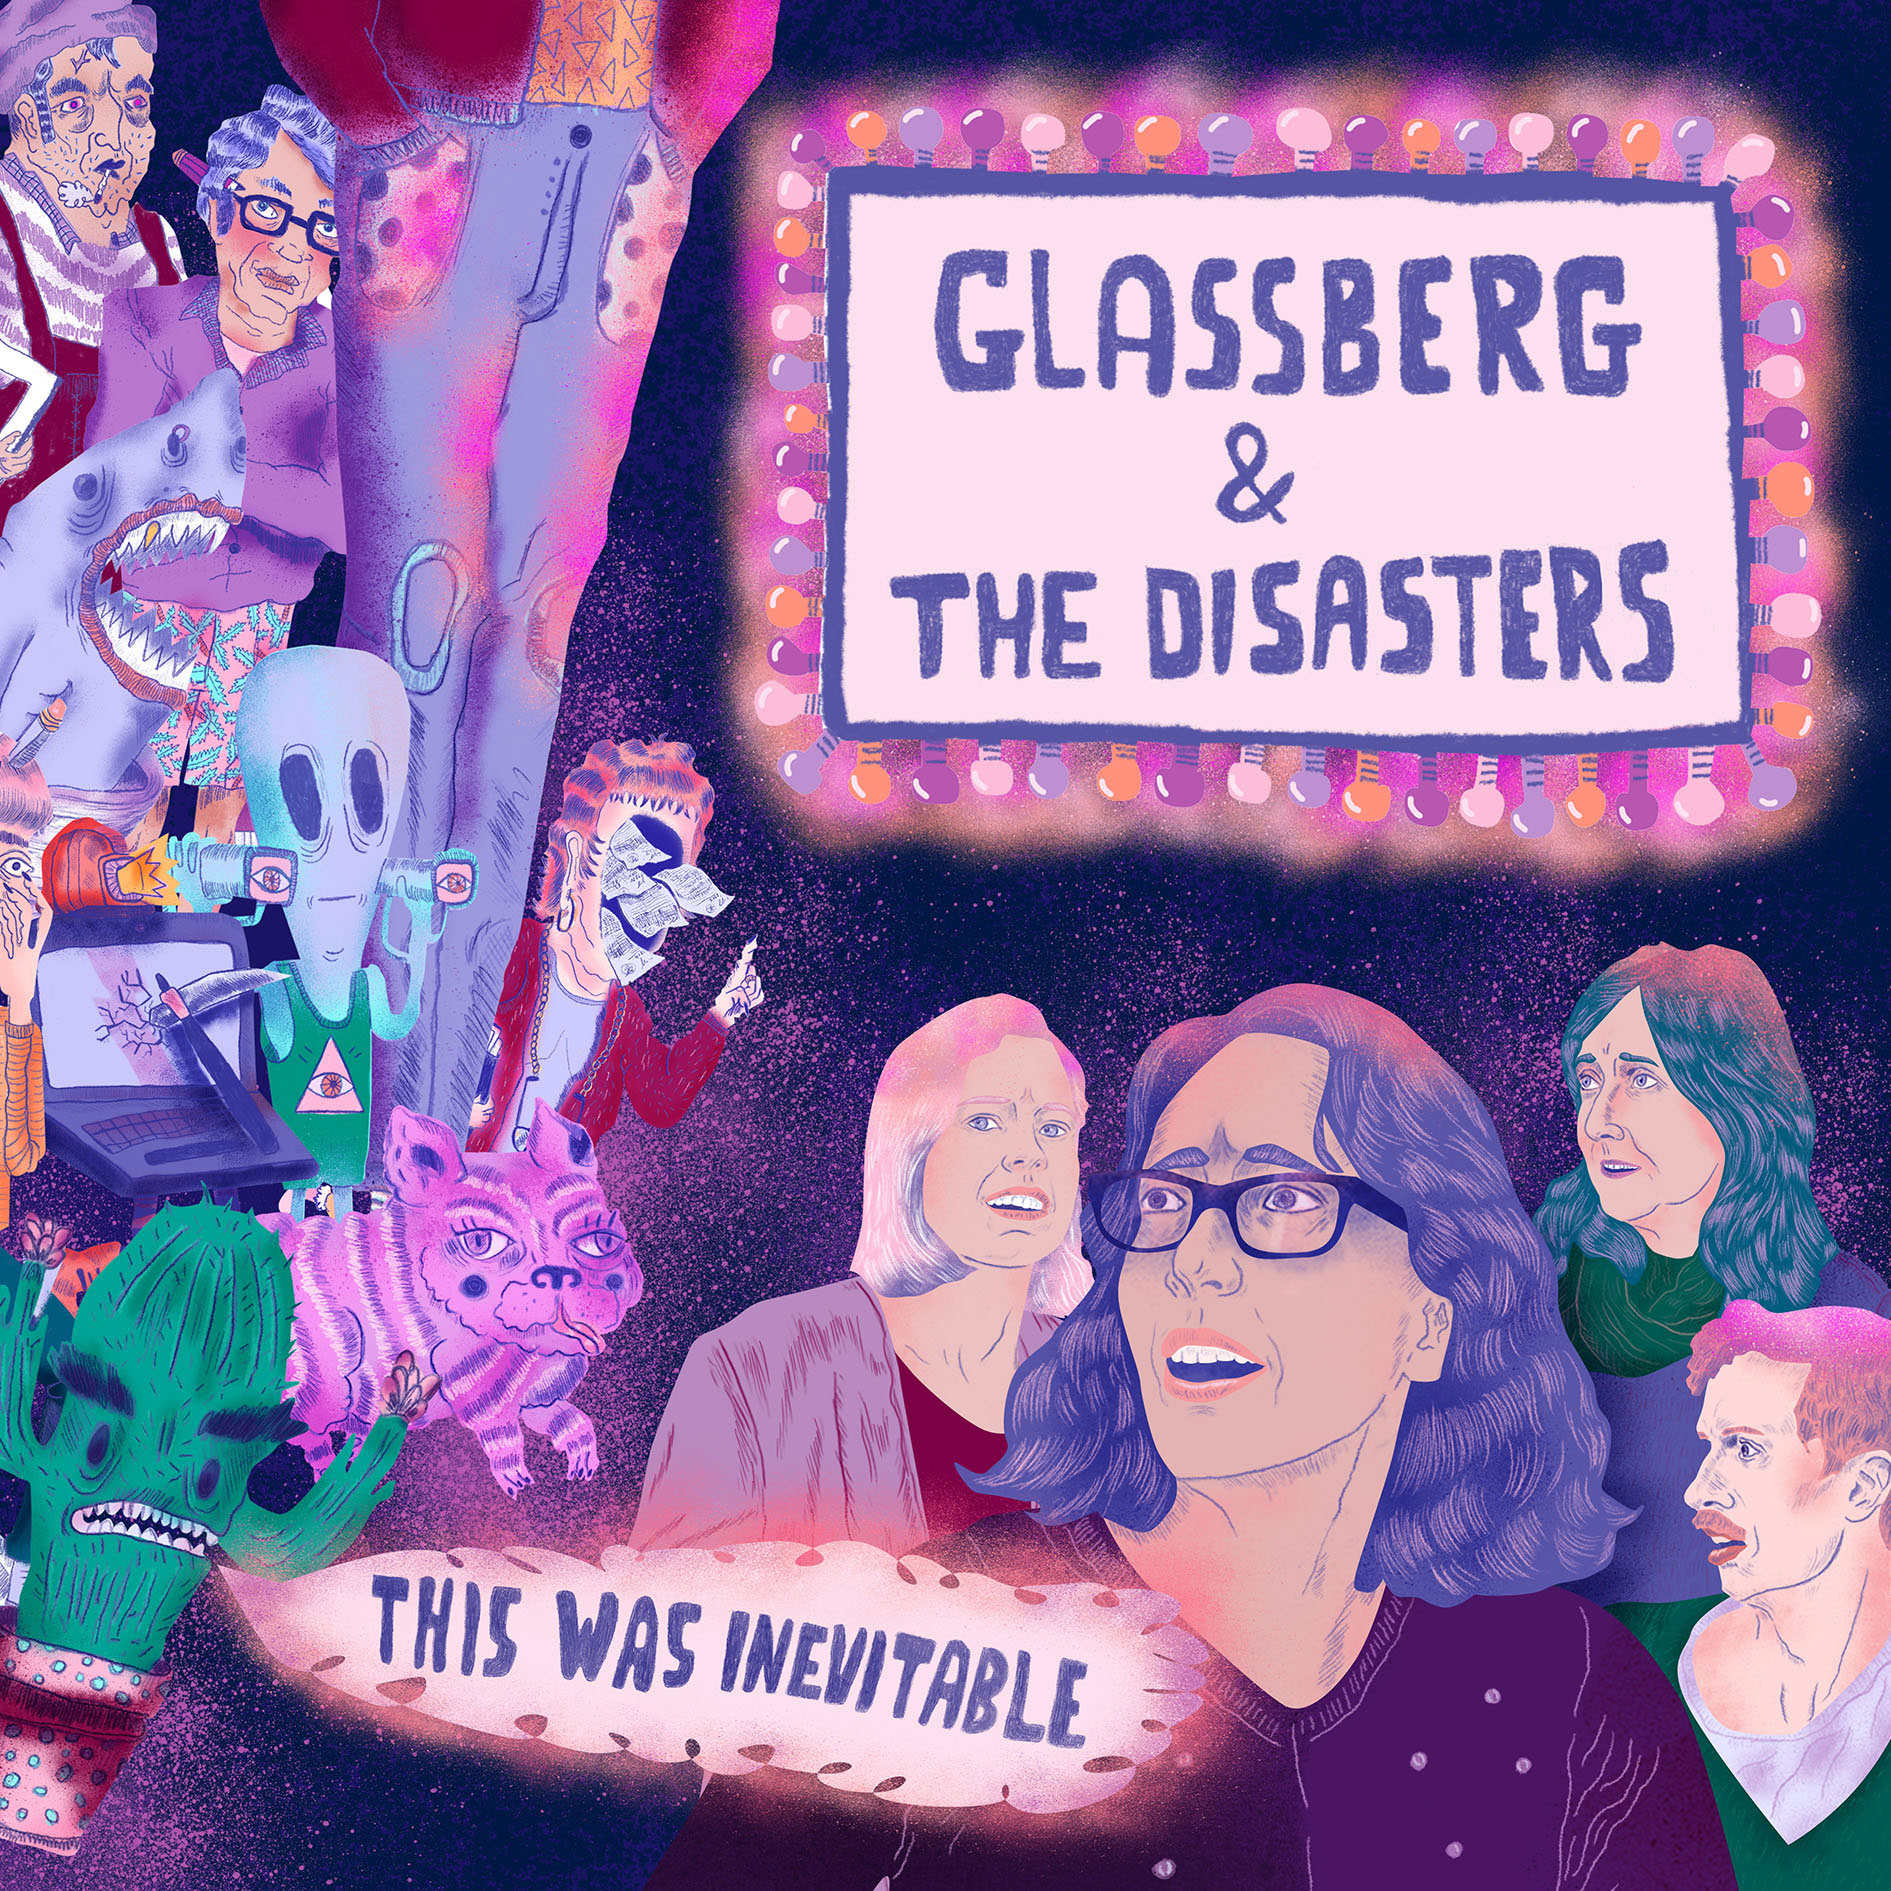 Glassberg & The Disasters'